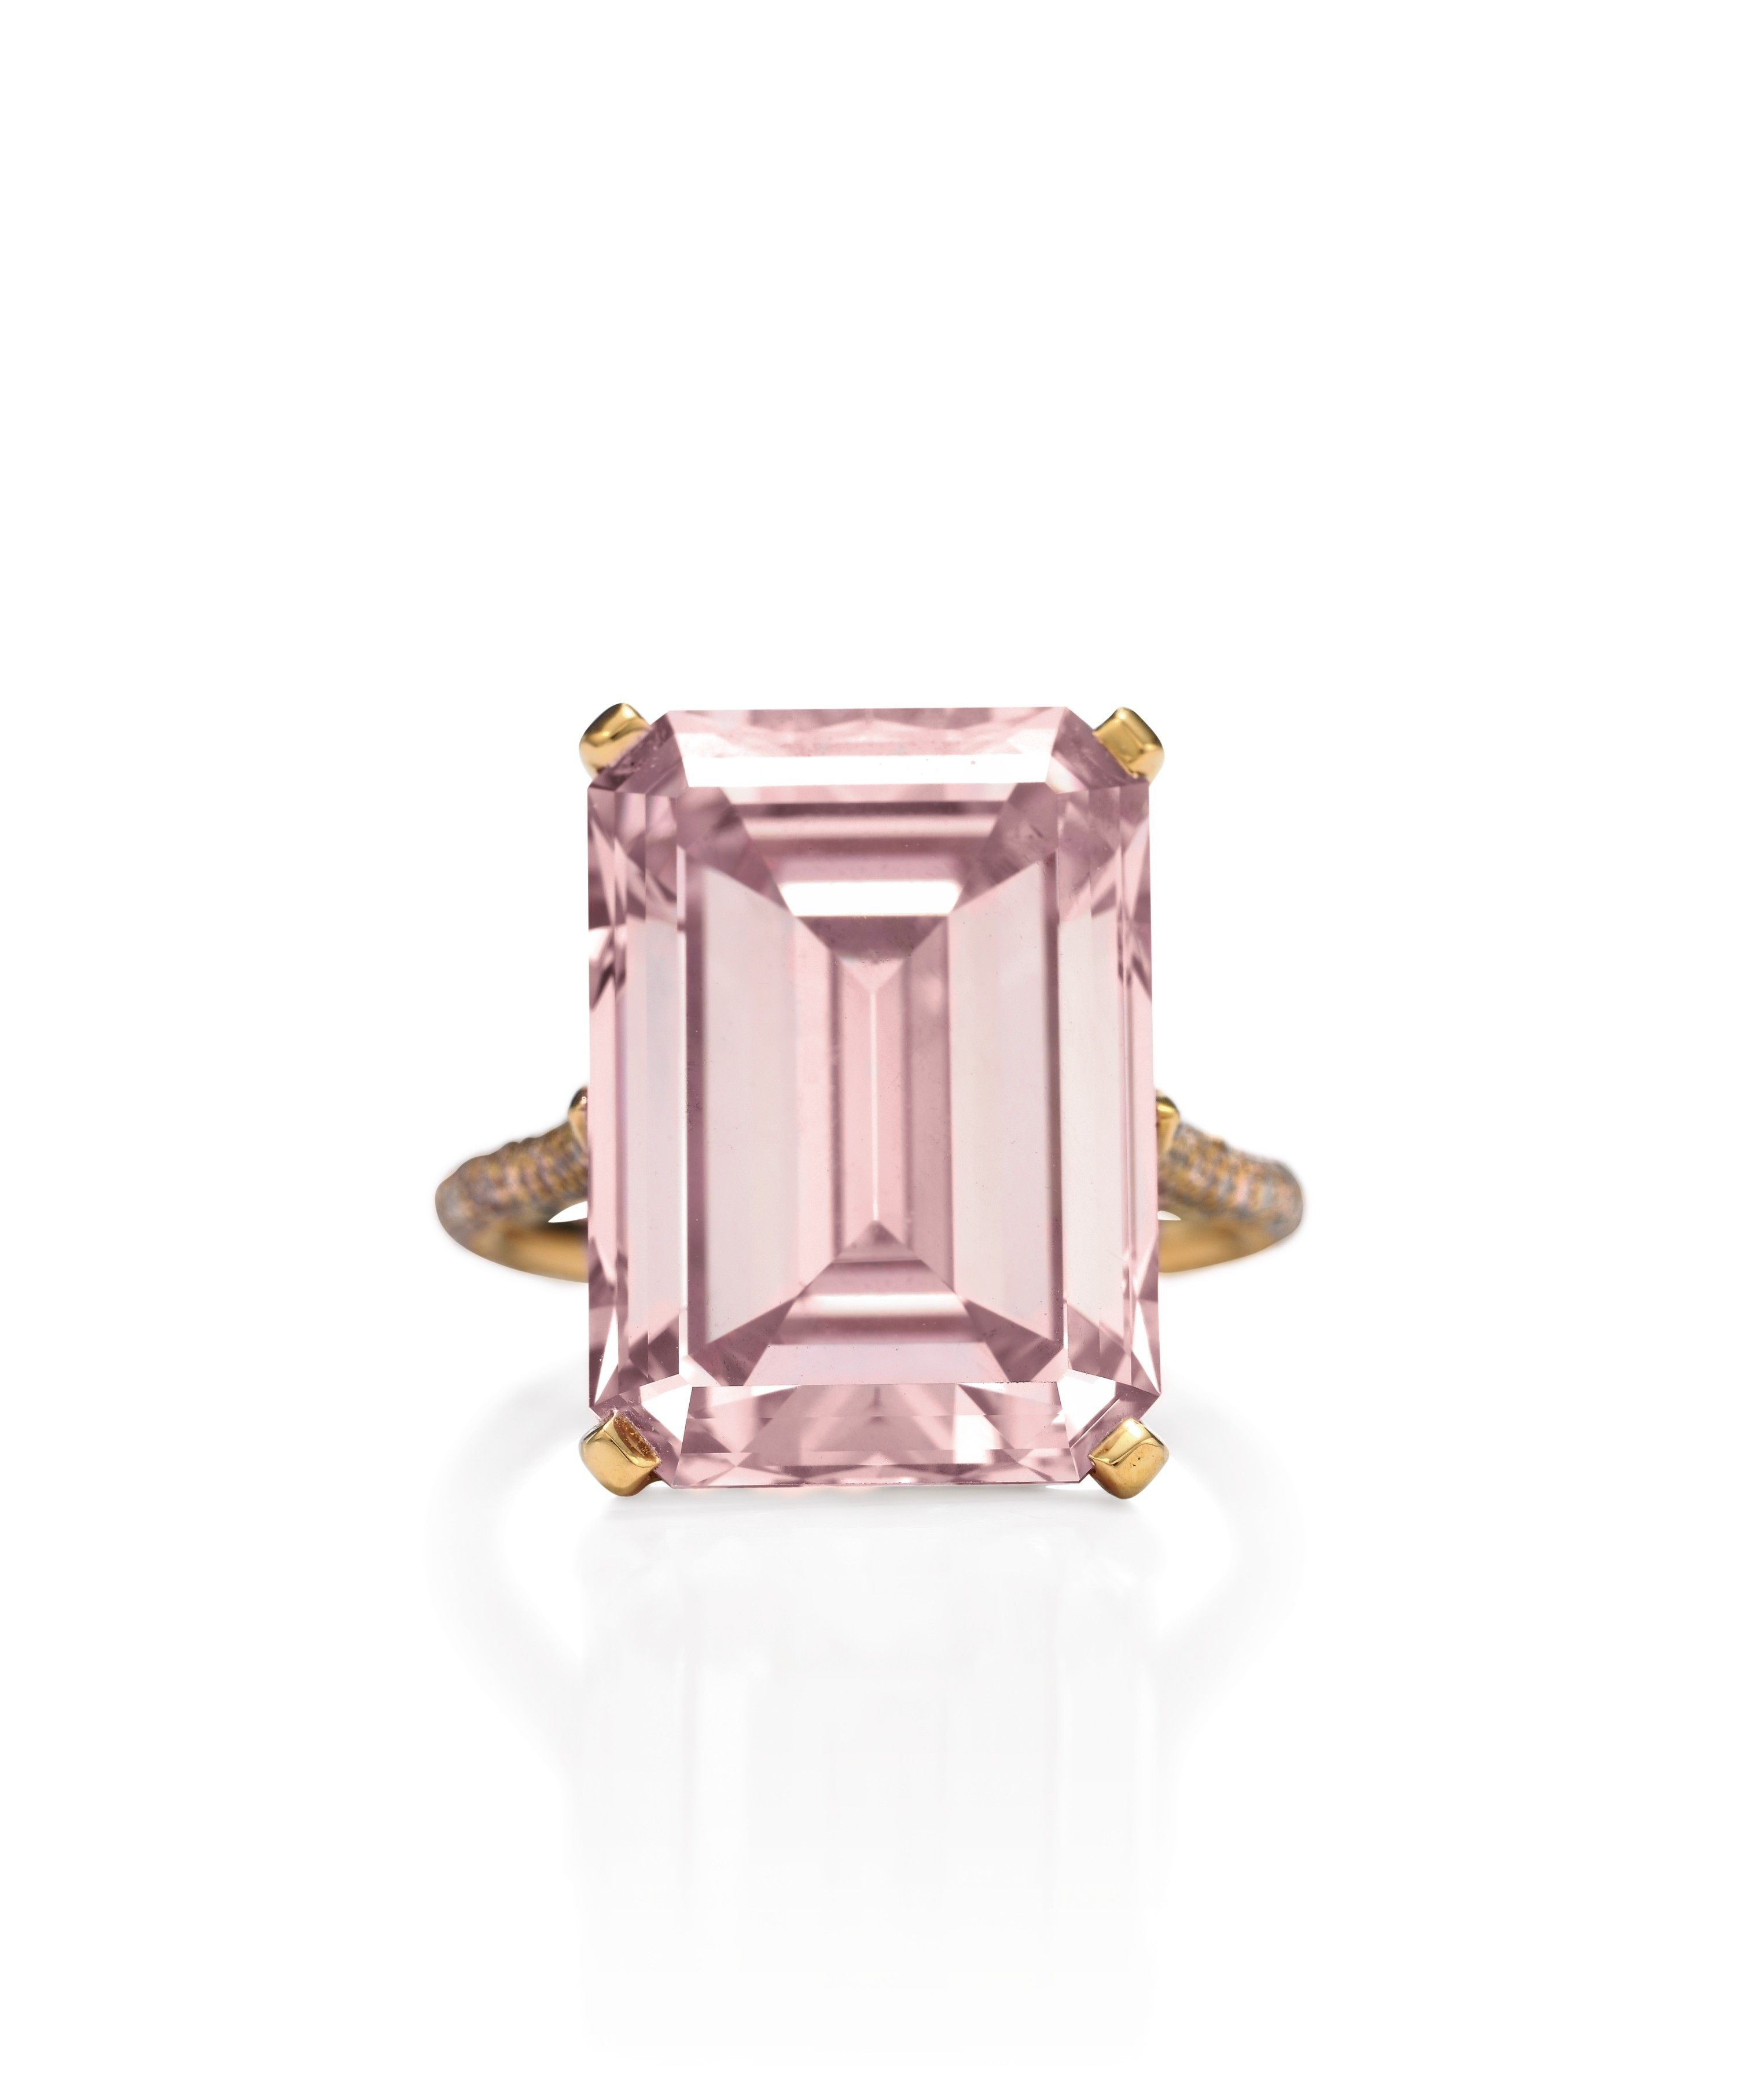 14.23-carat pink diamond, via Christie's April 2008 | See more about diamond engagement rings, pink diamonds and engagement rings.